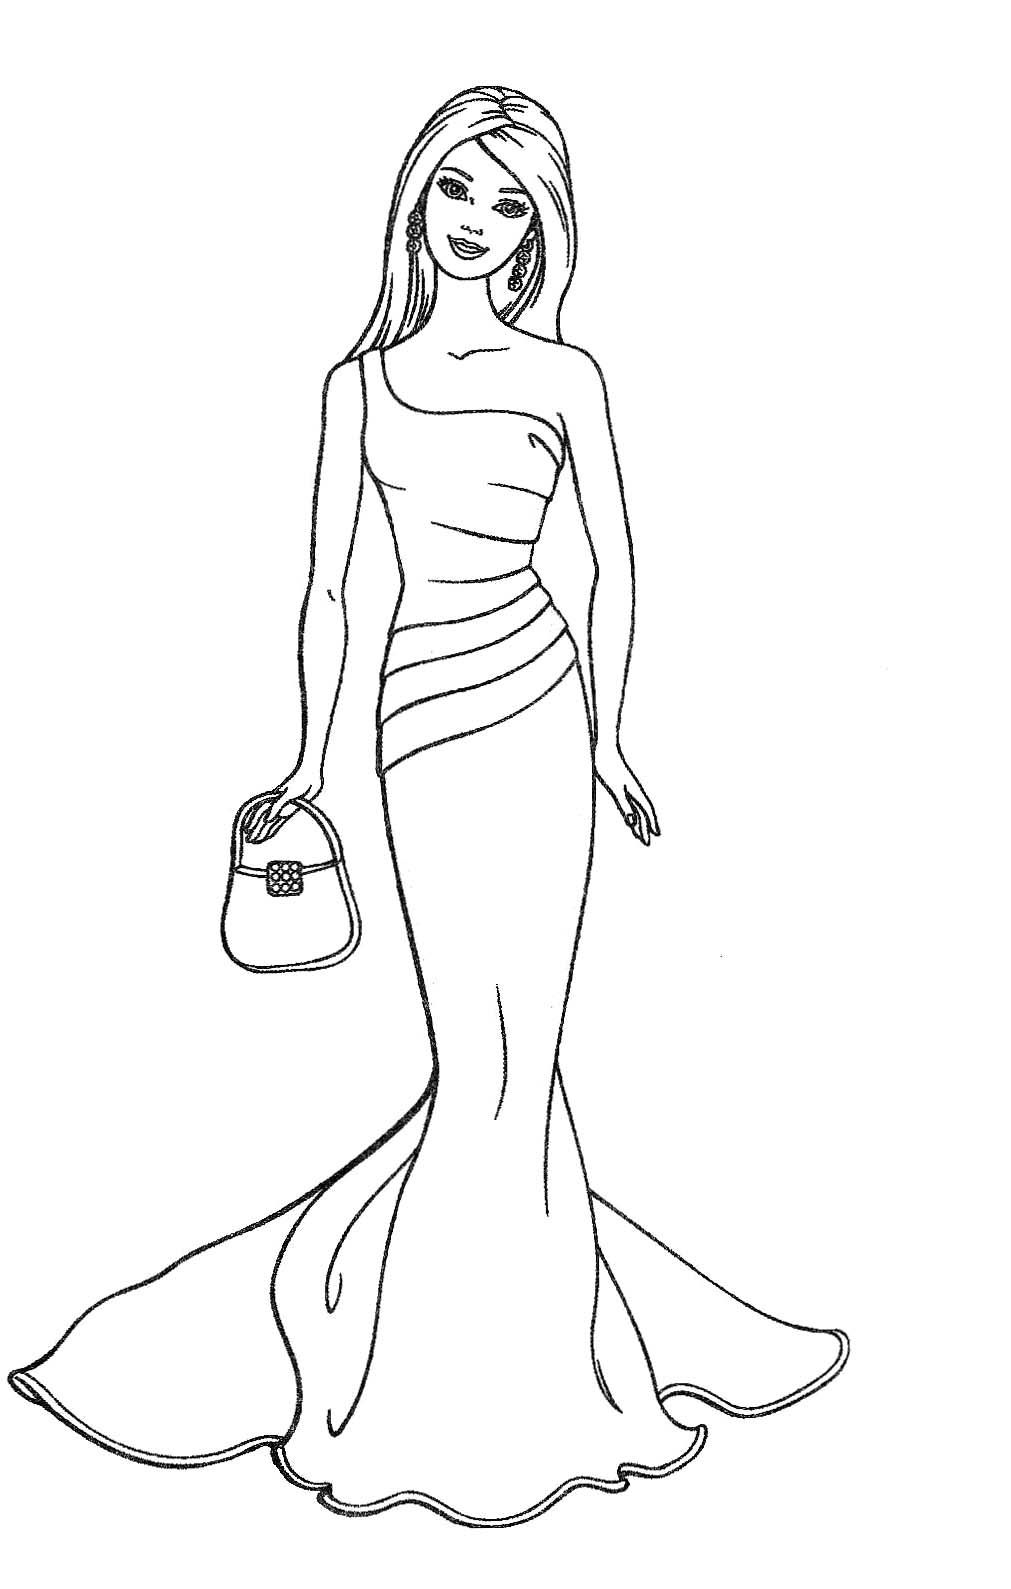 Barbie Fashion Coloring Page 01 Barbie Coloring Barbie Coloring